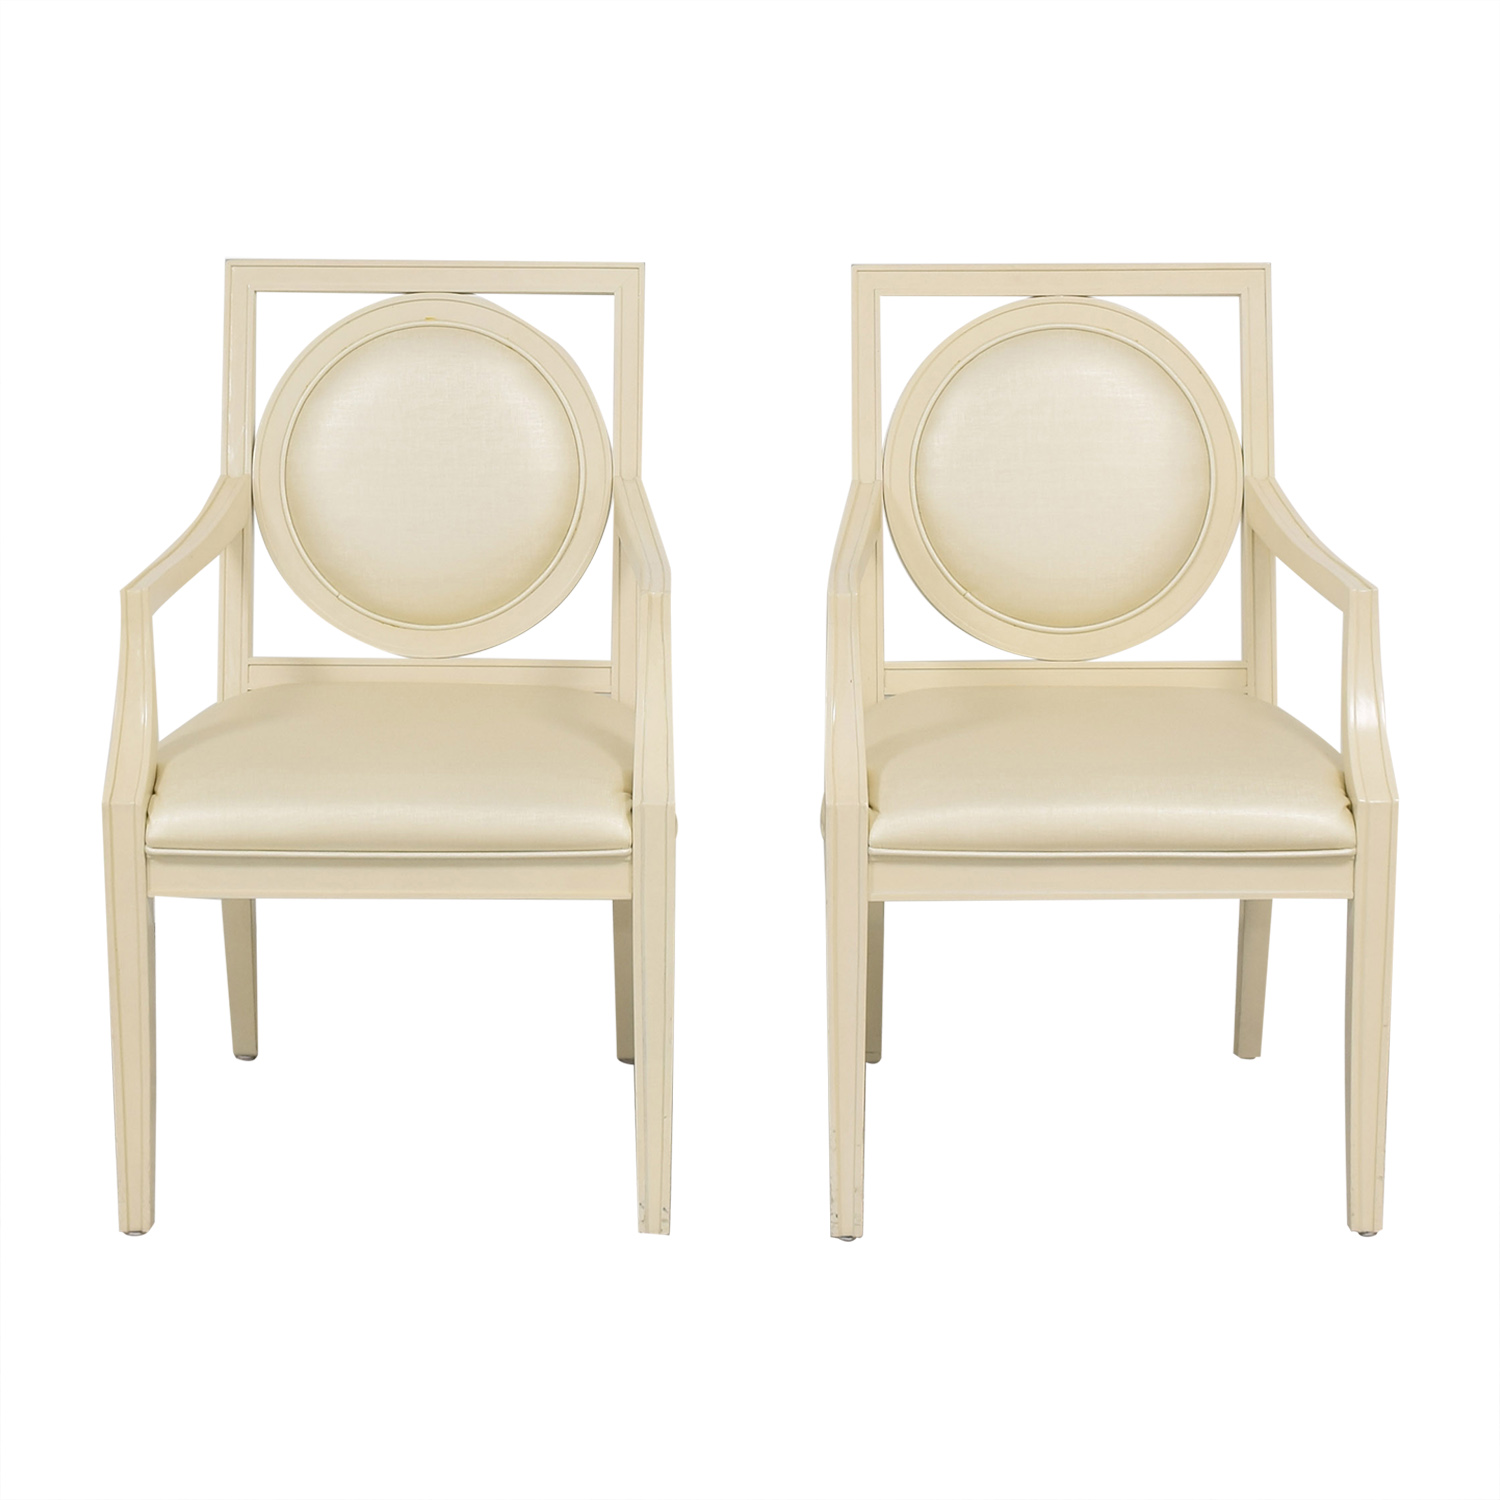 Bernhardt Bernhardt Salon Arm Chairs nyc